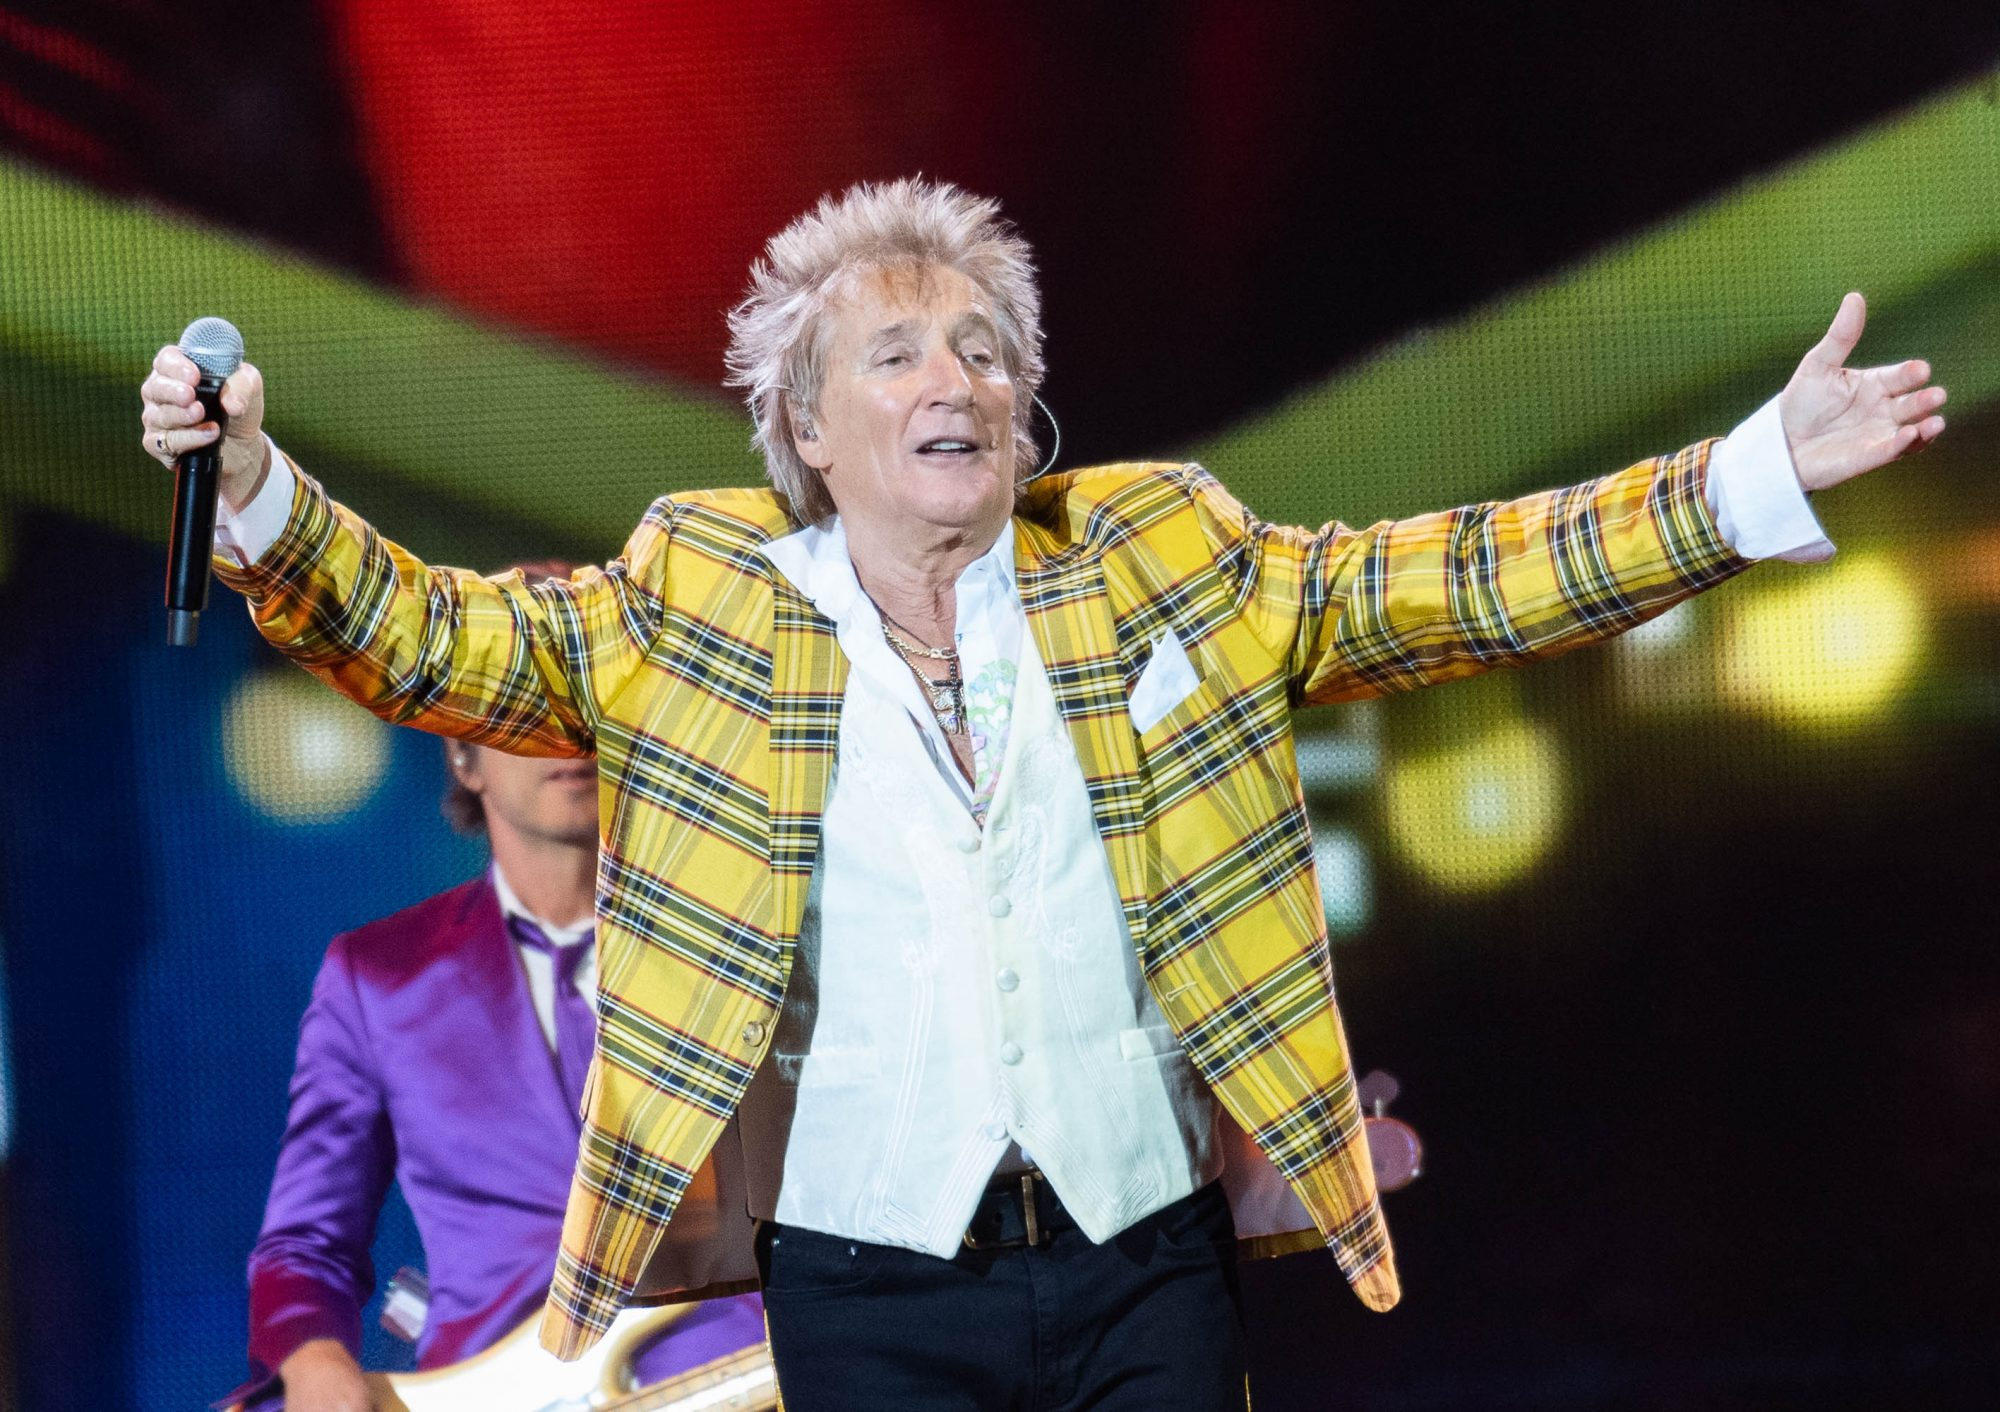 Rod Stewart Performs At The SSE Hydro, Glasgow